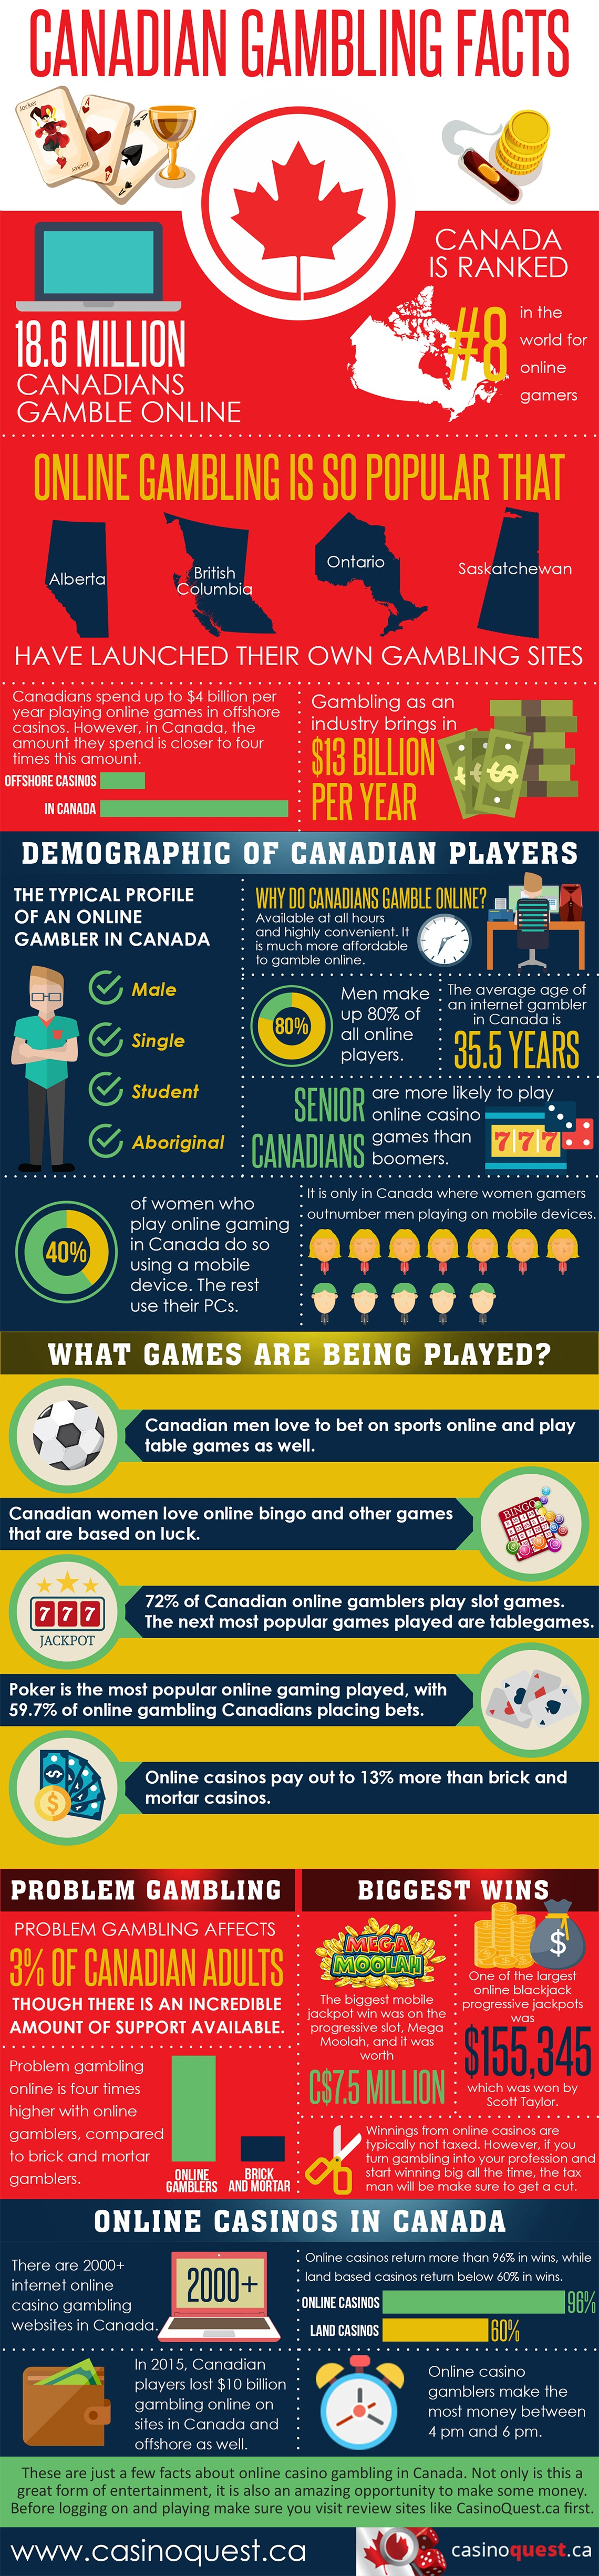 Infographic of Canadian Online Gambling Facts